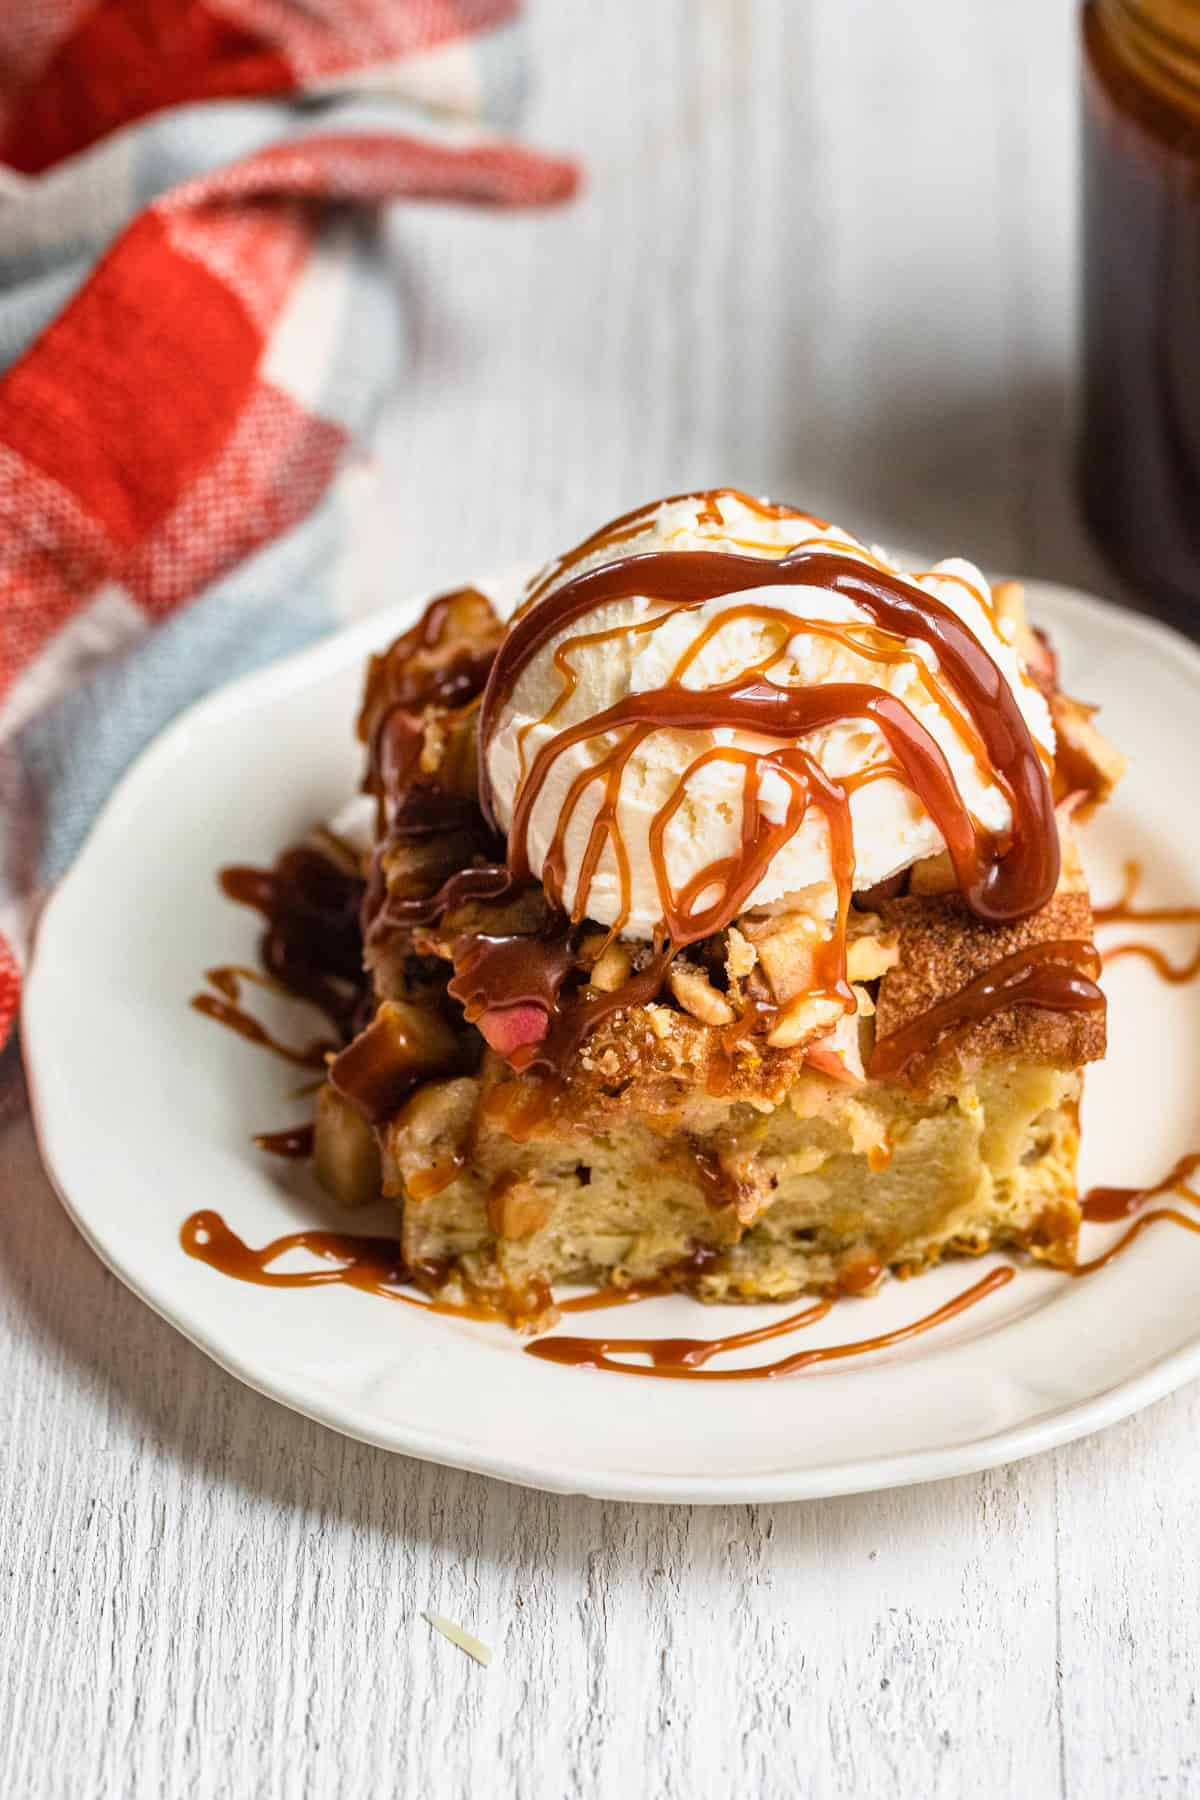 Plate of the apple bread pudding with ice cream on top and caramel sauce drizzle over